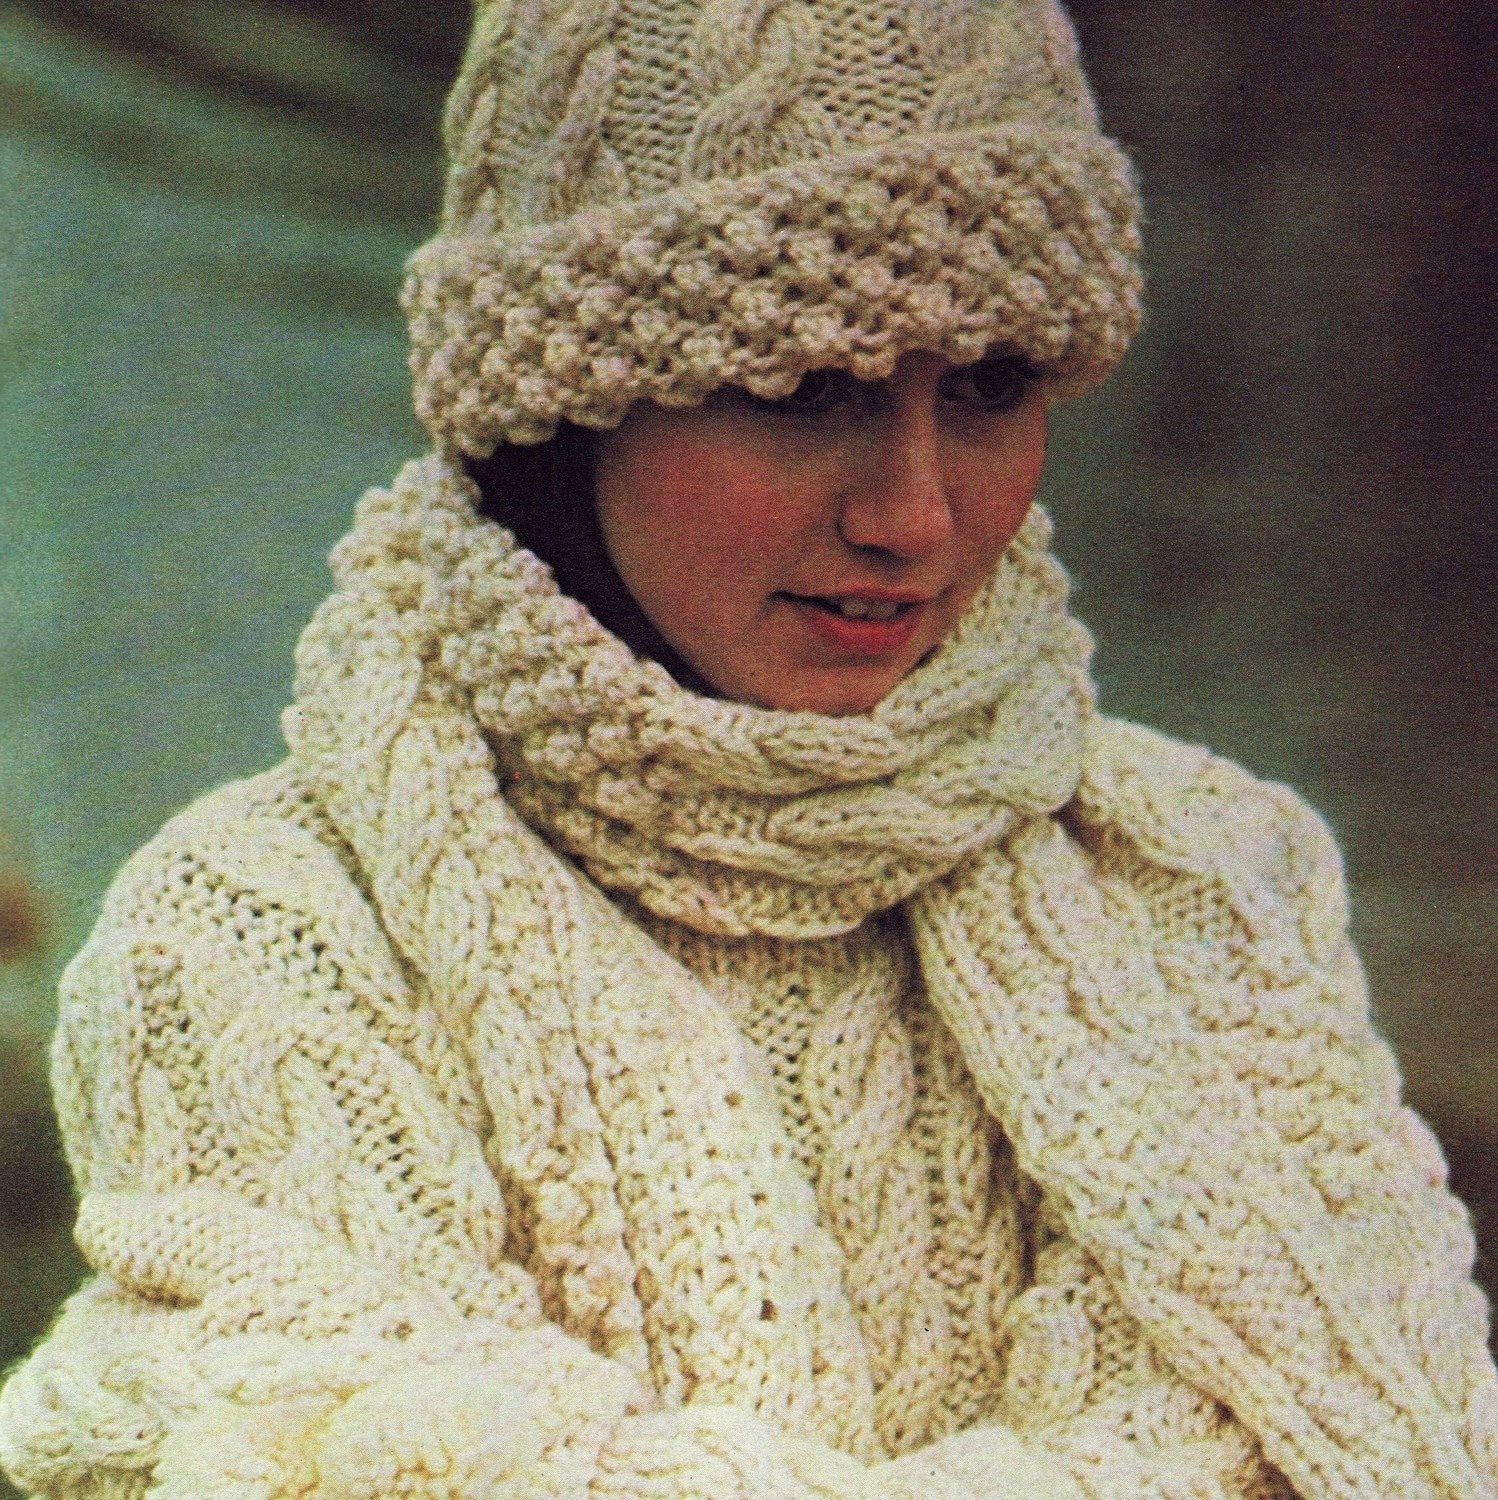 Knitting Patterns For Women s Scarf : HAT SCARF KNITTING PATTERNS   Free Patterns